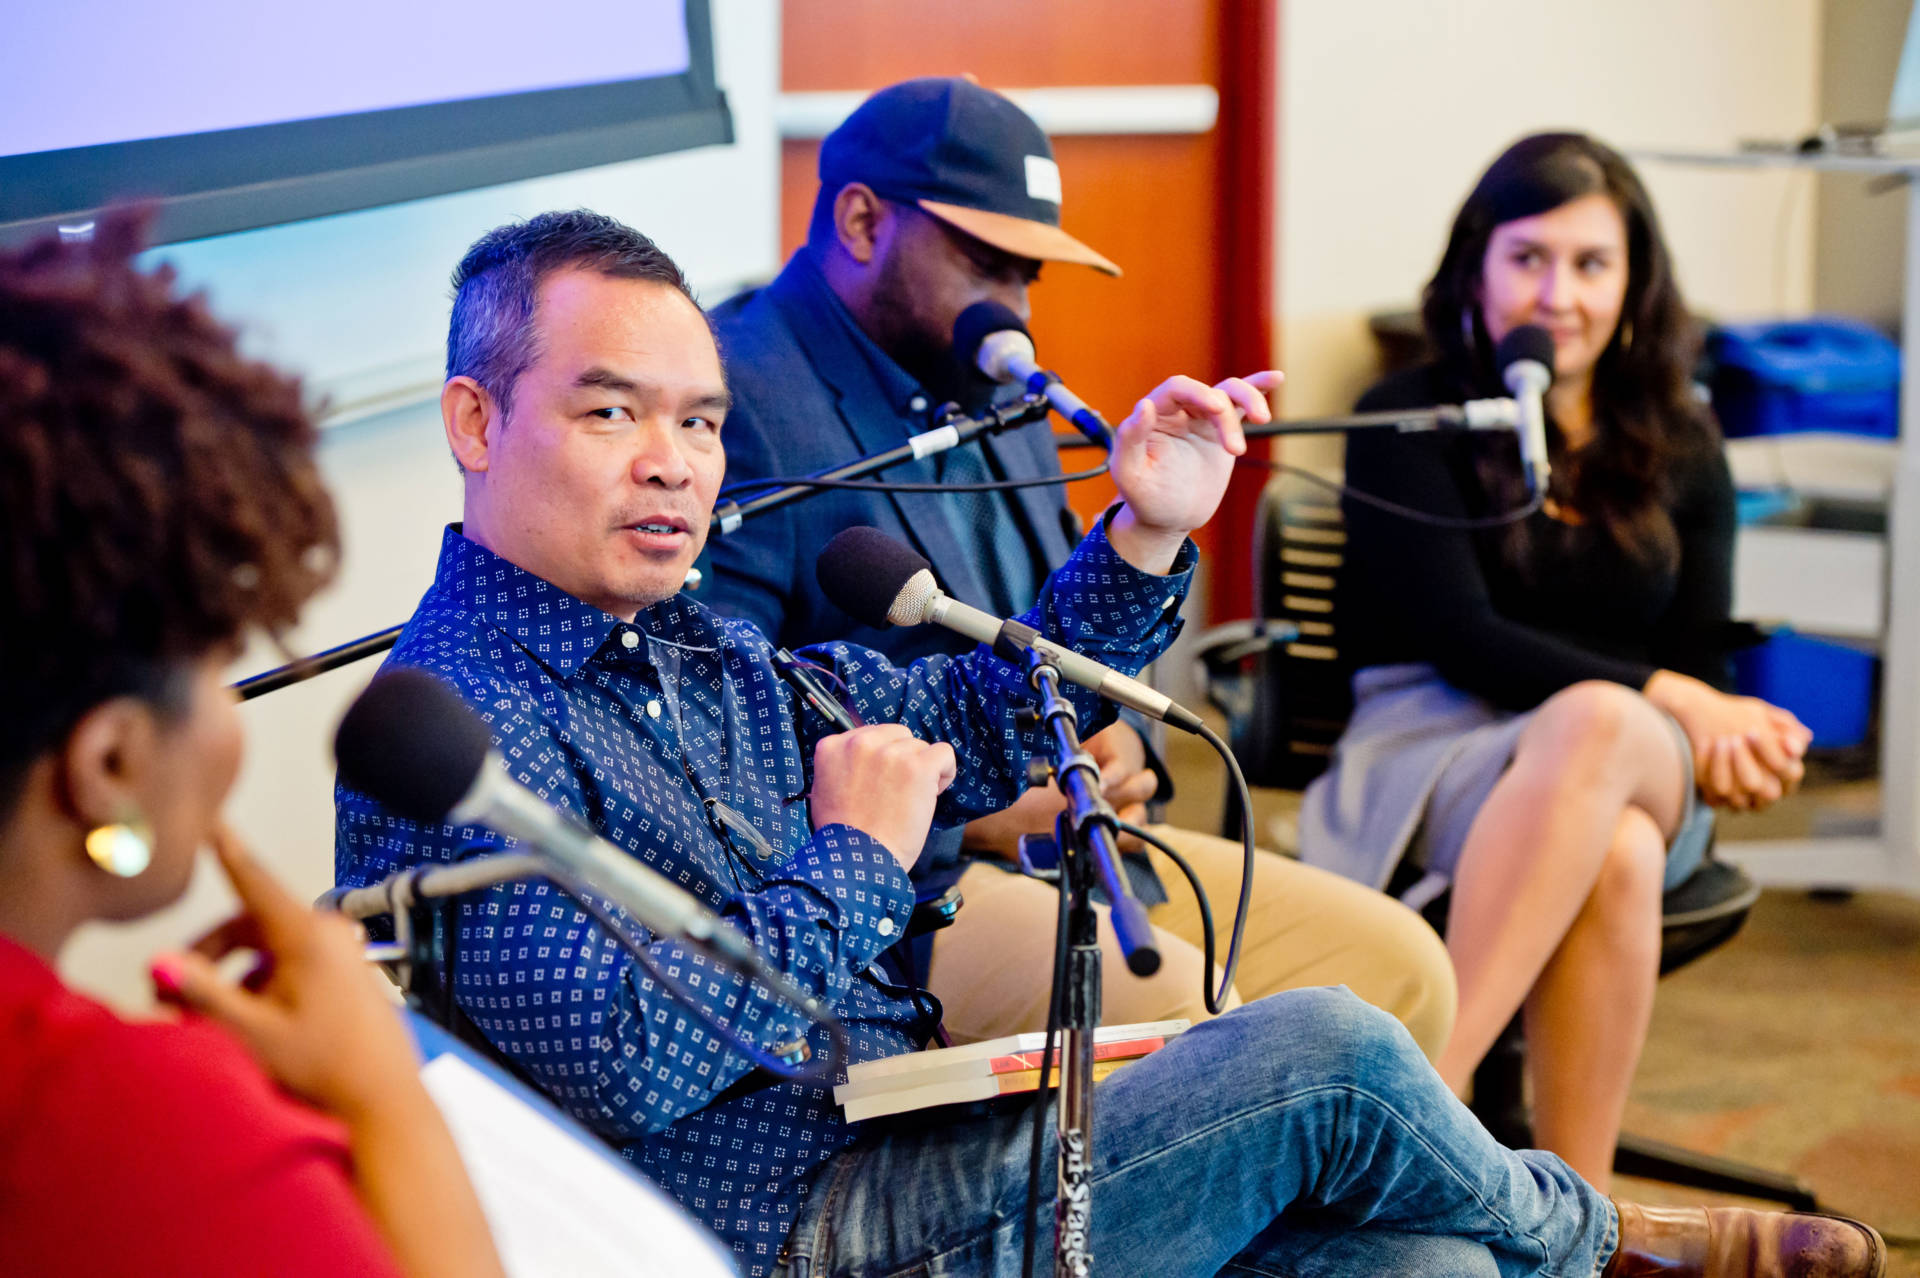 Andrew Lam, Carvell Wallace and Cristina Mora discuss demographic shifts with KQED's Tonya Mosley on April 25, 2018. Alain McLaughlin/Alain McLaughlin Photography Inc